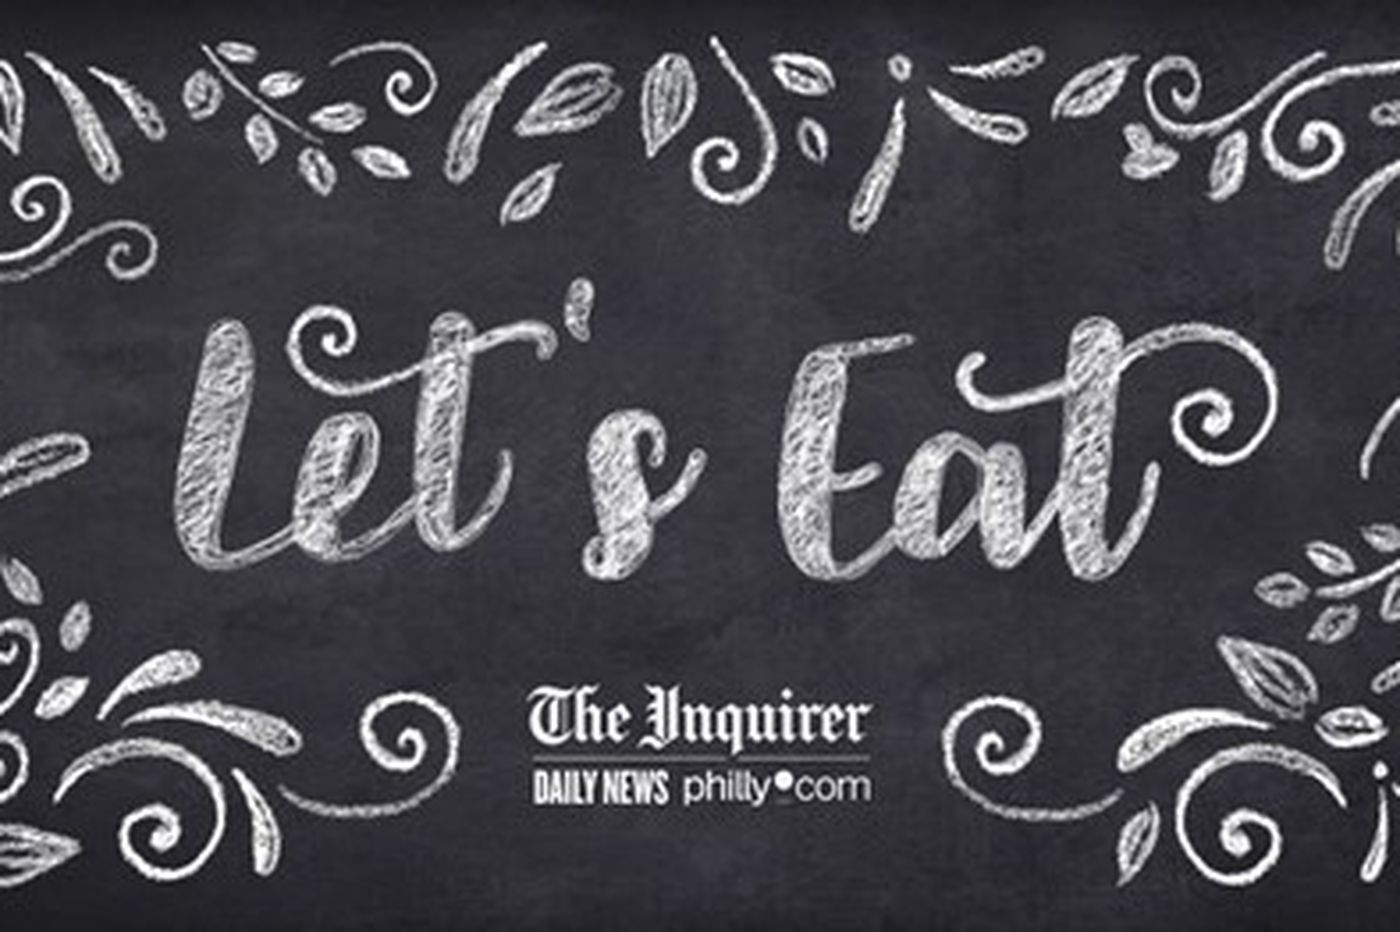 Let's Eat: The January restaurant shakeup